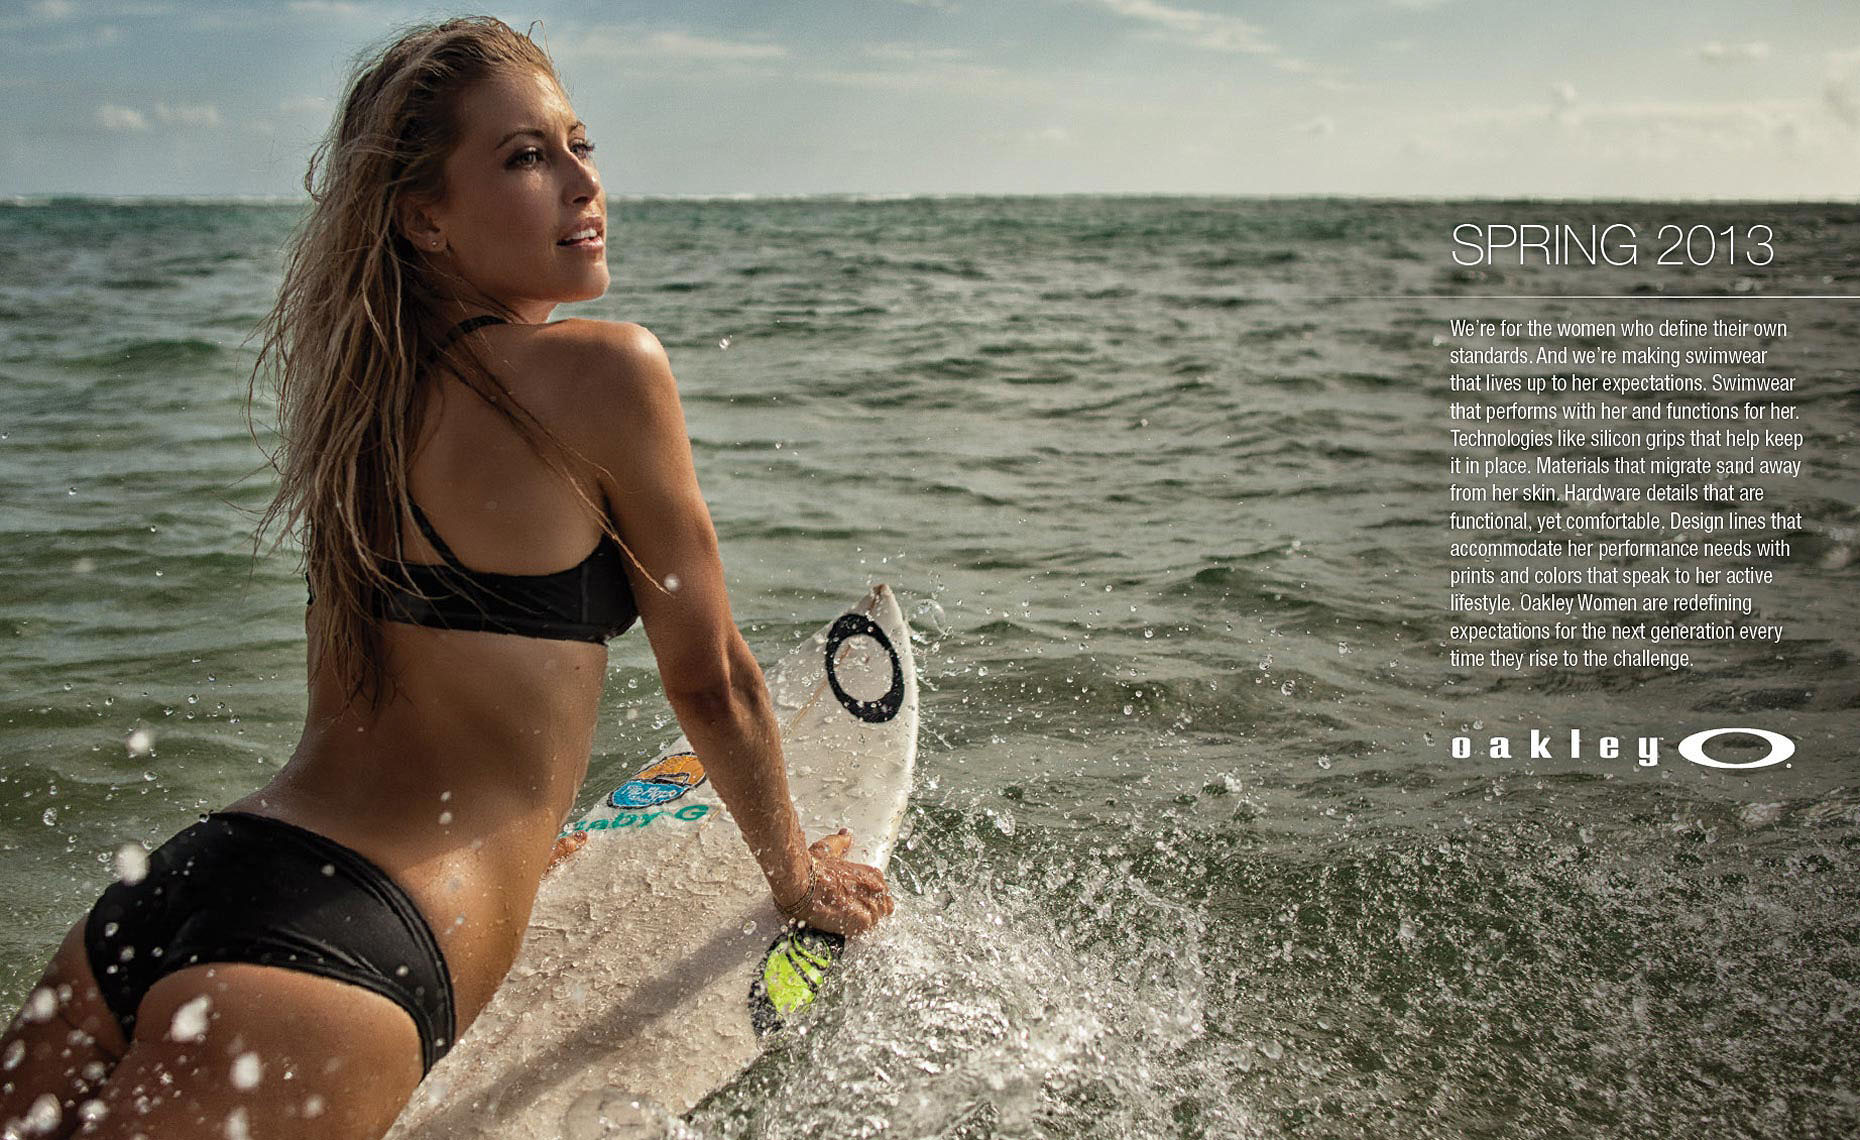 Oakley_swim_folio6.jpg